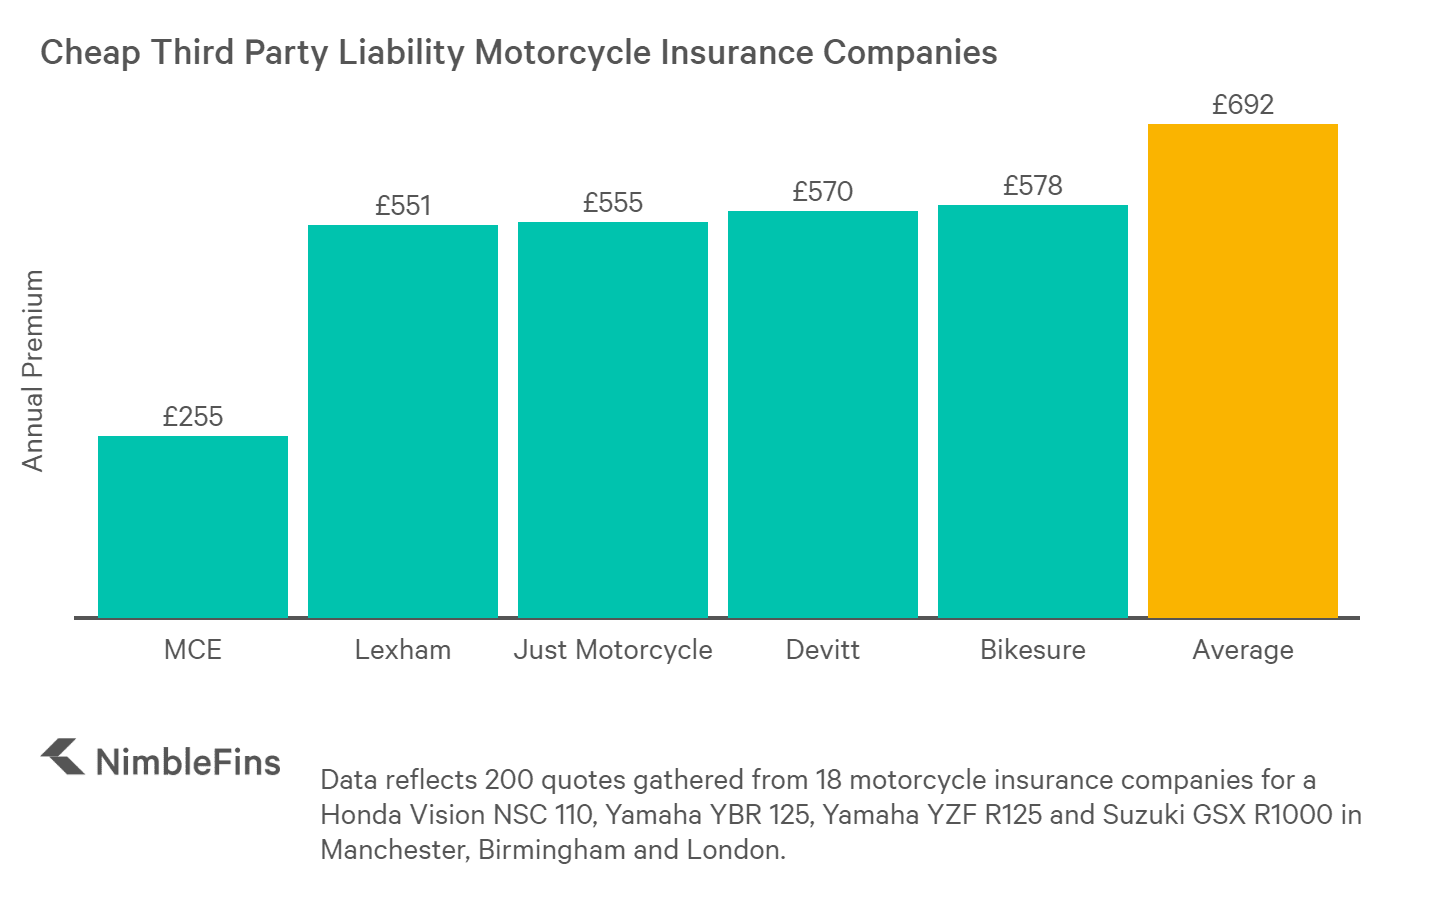 chart showing cheap motorcycle insurance companies for 3rd party liability bike insurance